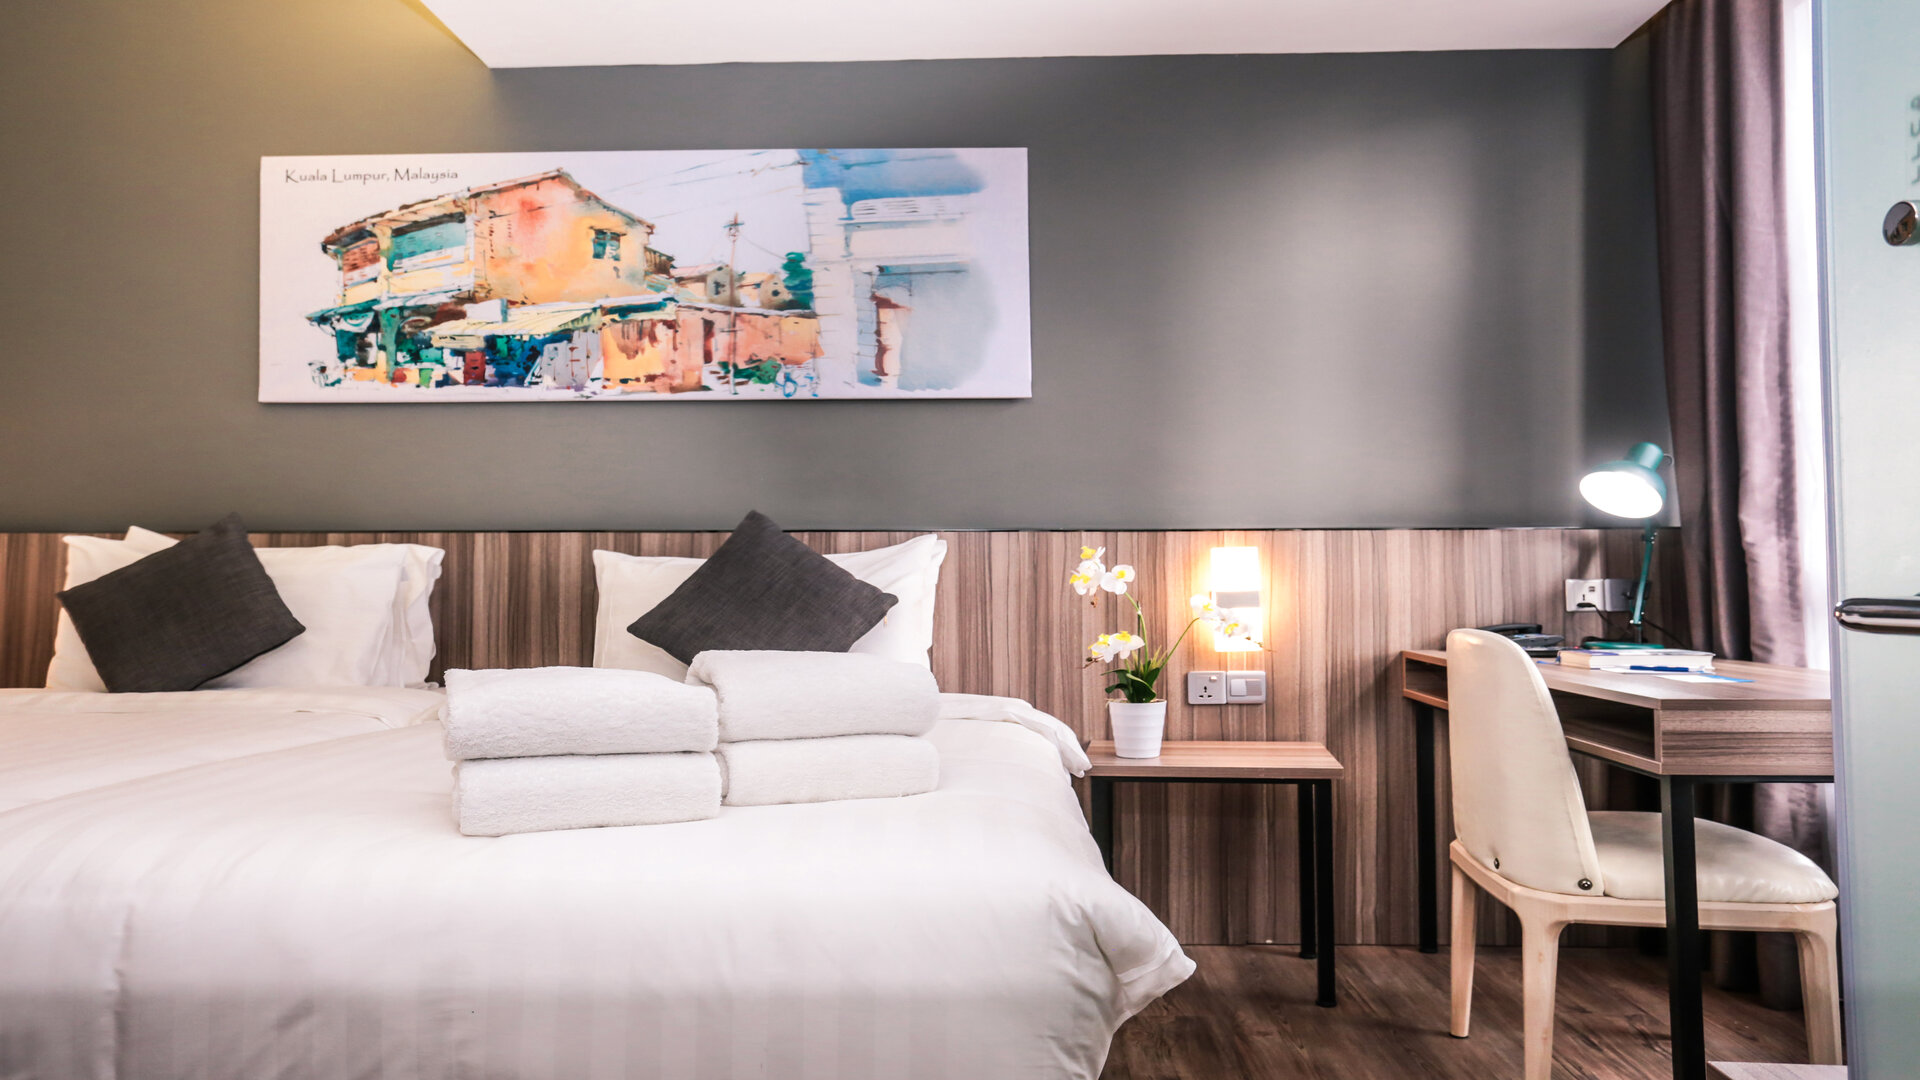 Days Hotel and Suites by Wyndham Fraser Business Park Kuala Lumpur, Kuala Lumpur